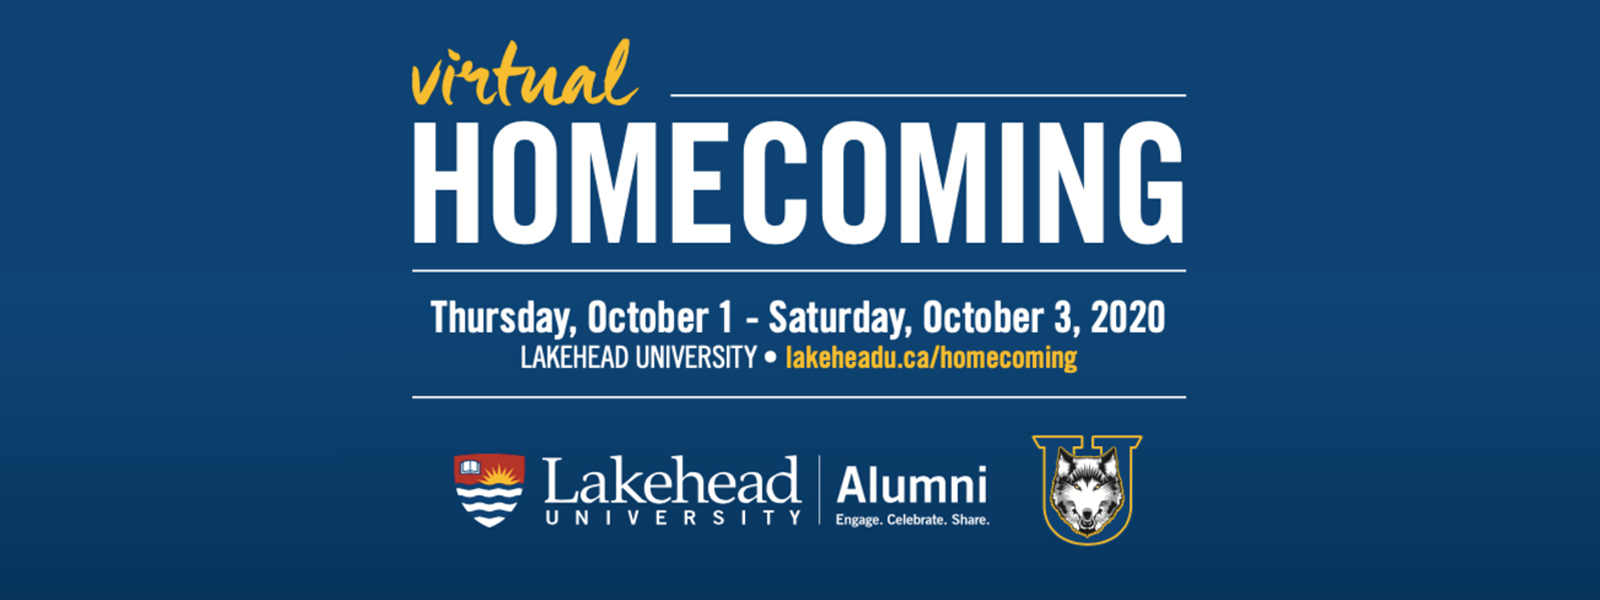 Join us and celebrate your 2020 Alumni Award Winners! Date: Thursday, October 1 - Saturday, October 3, 2020 • lakeheadu.ca/homecoming